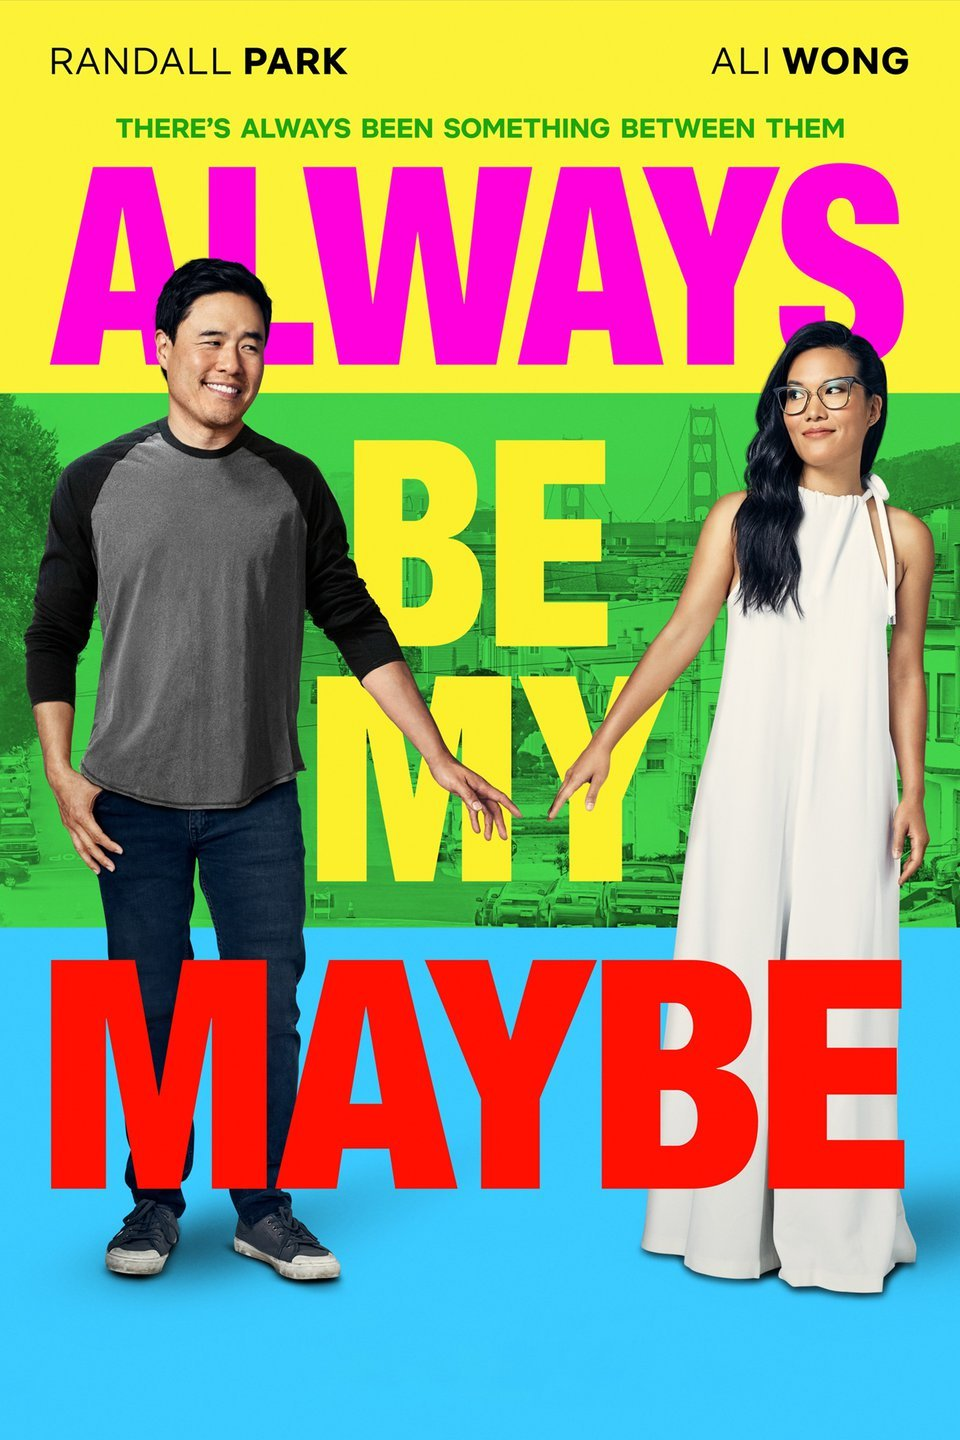 — ALWAYS BE MY MAYBE   Childhood sweethearts have a falling out and don't speak for 15 years, only reconnecting as adults when Sasha runs into Marcus in San Francisco. Although the old sparks are still there, the couple live in different worlds.